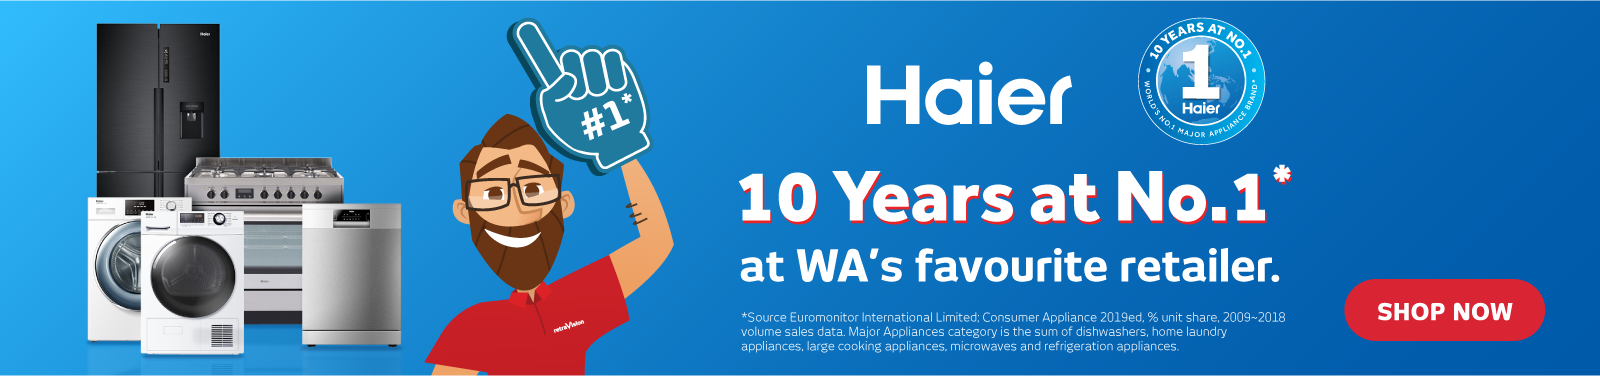 Haier 10 Years At #1